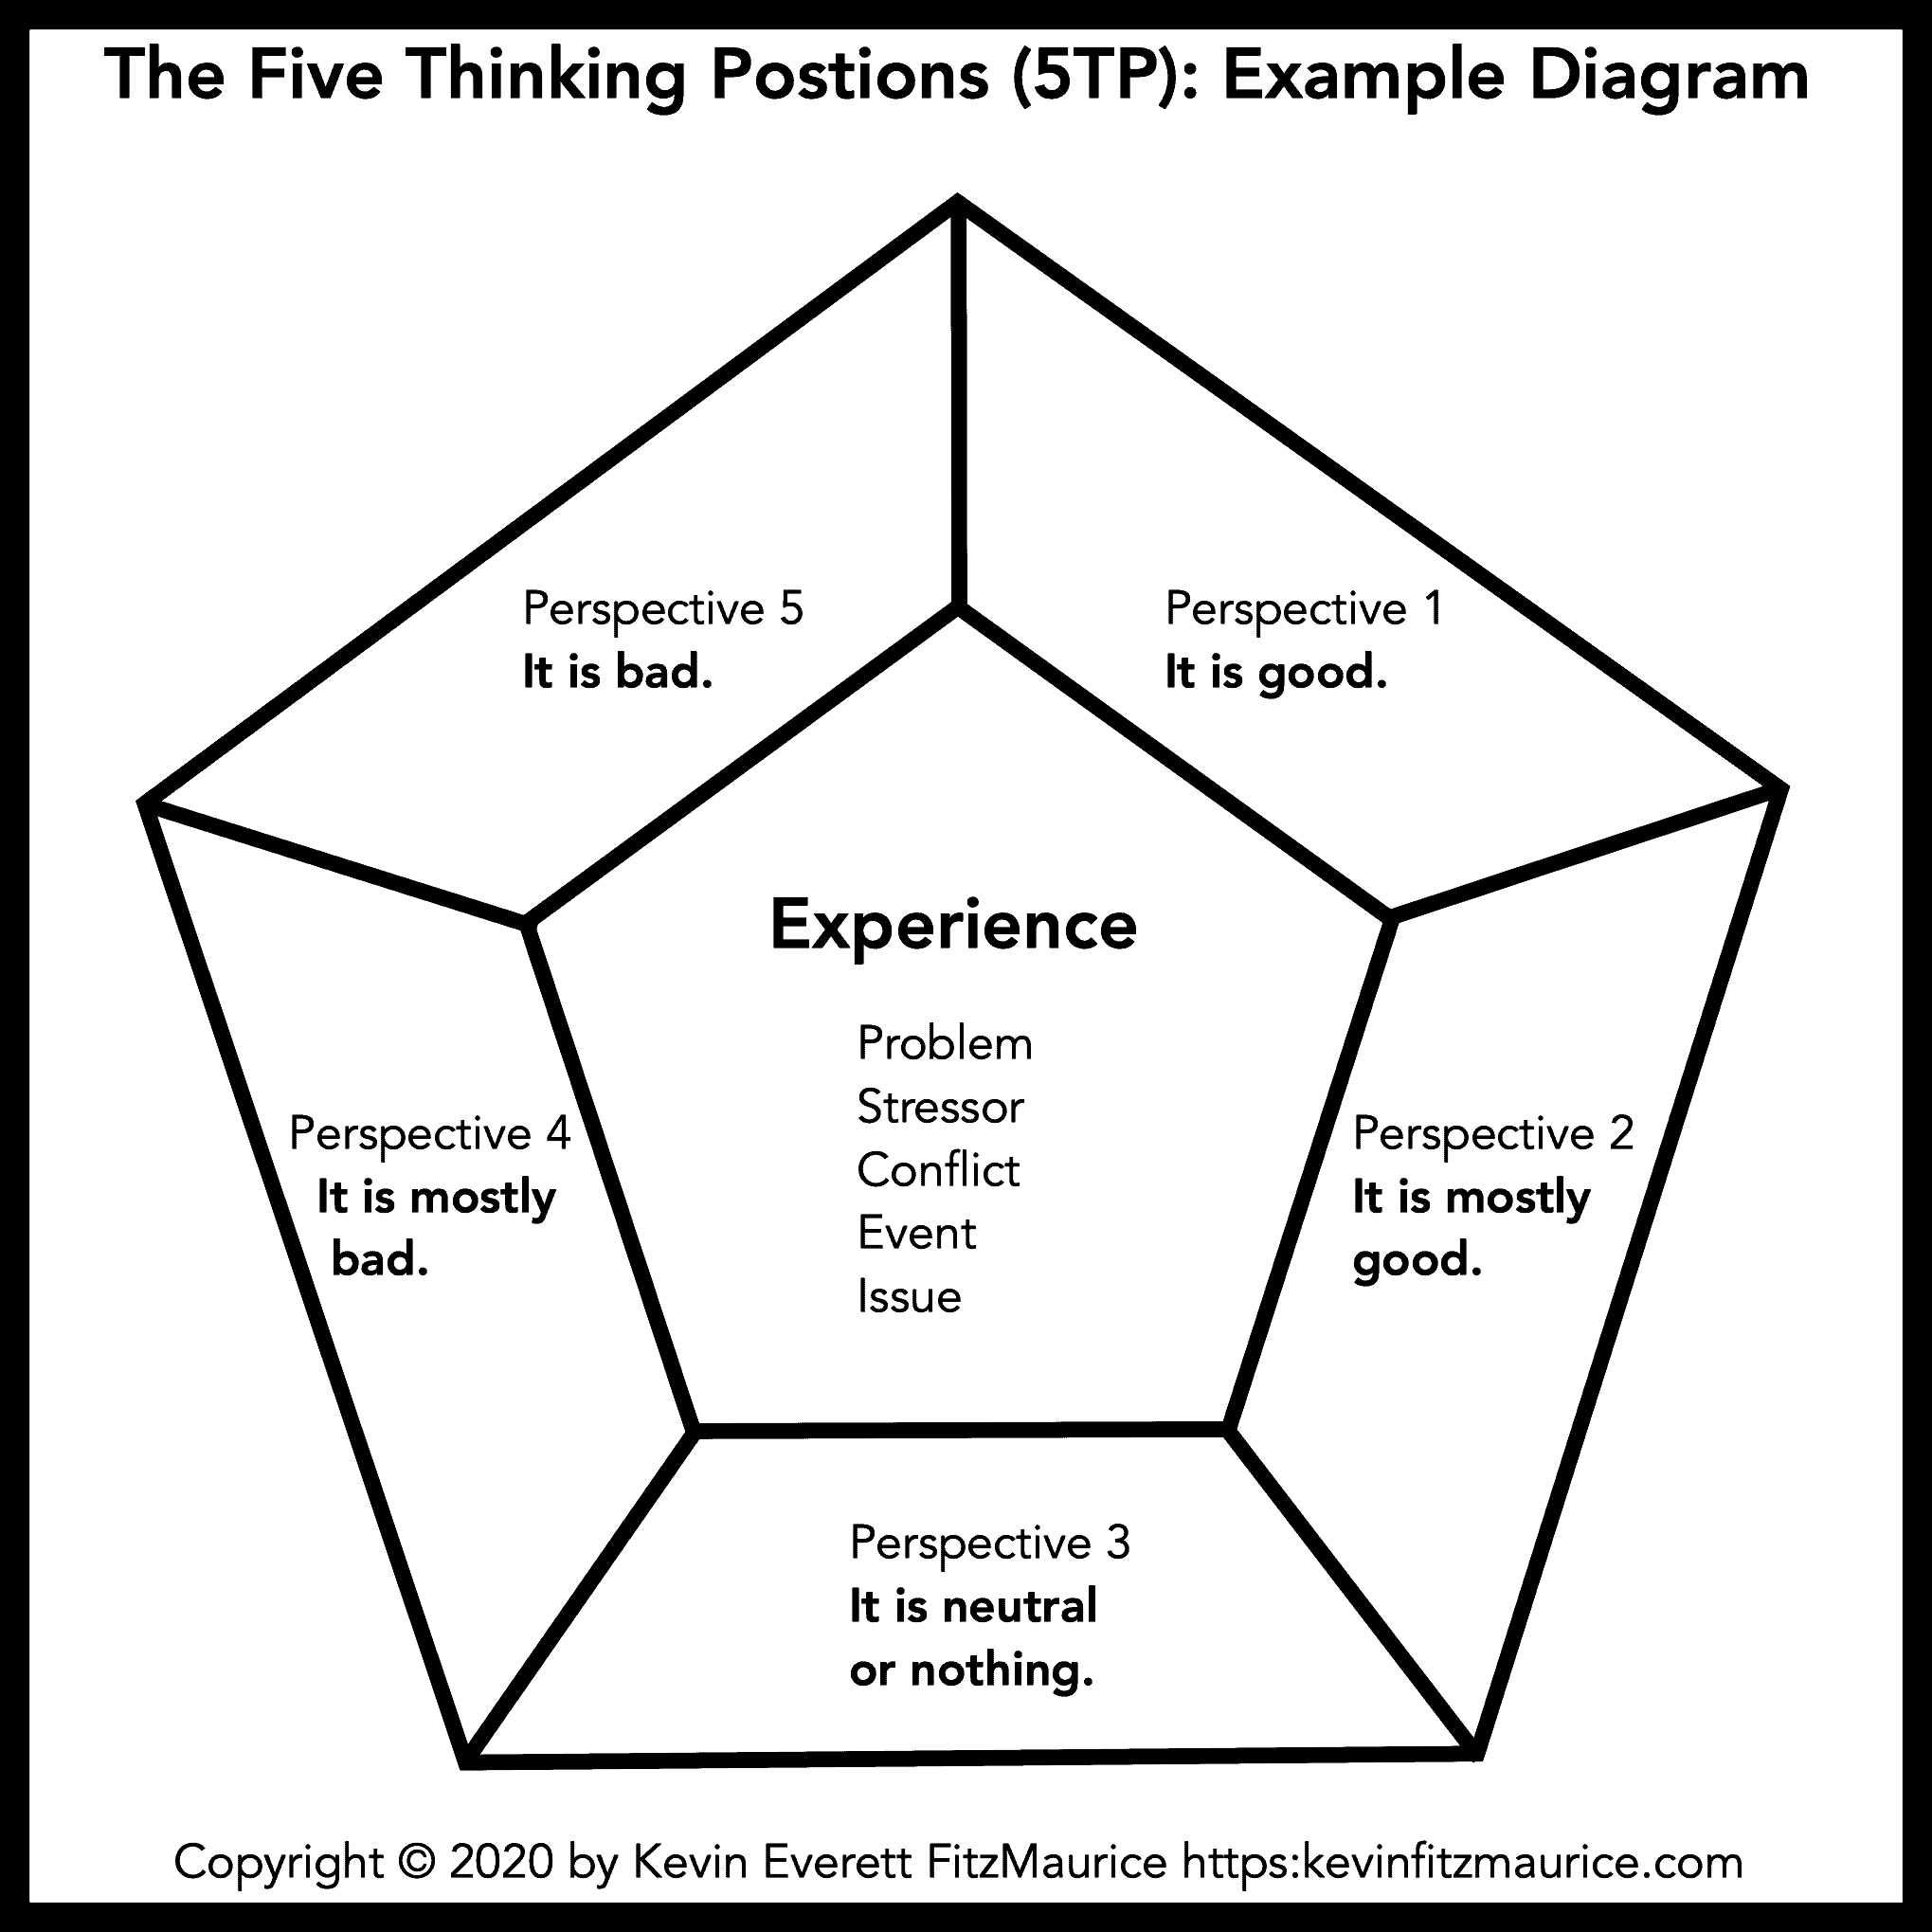 The Five Thinking Positions Star Diagram